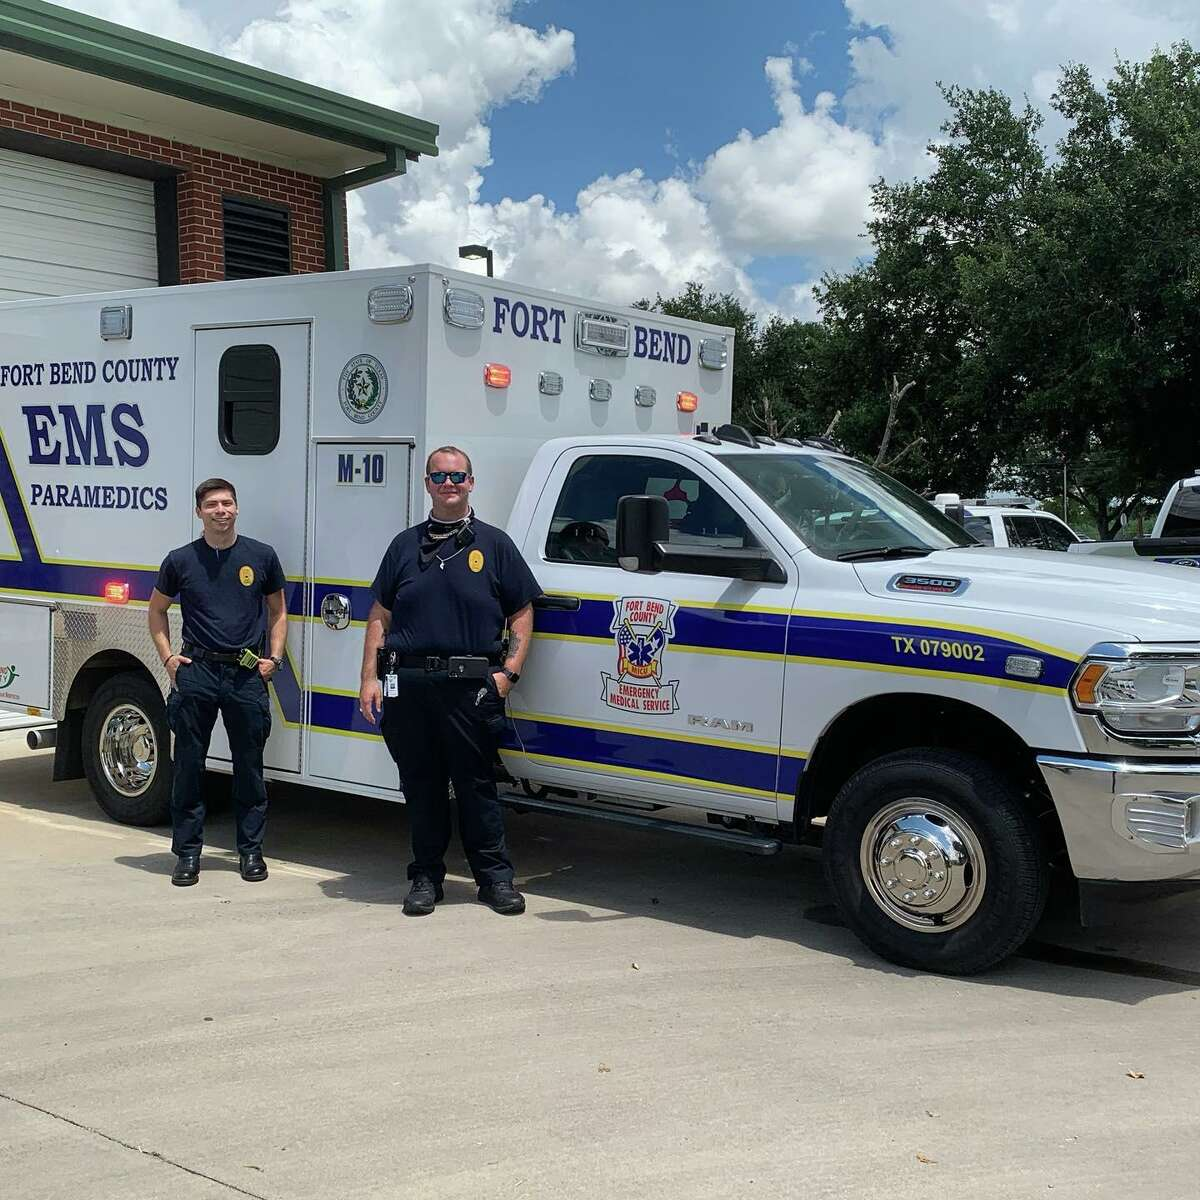 Fort Bend County EMS has received the American Heart Association's Mission: Lifeline EMS SILVER PLUS Achievement Award